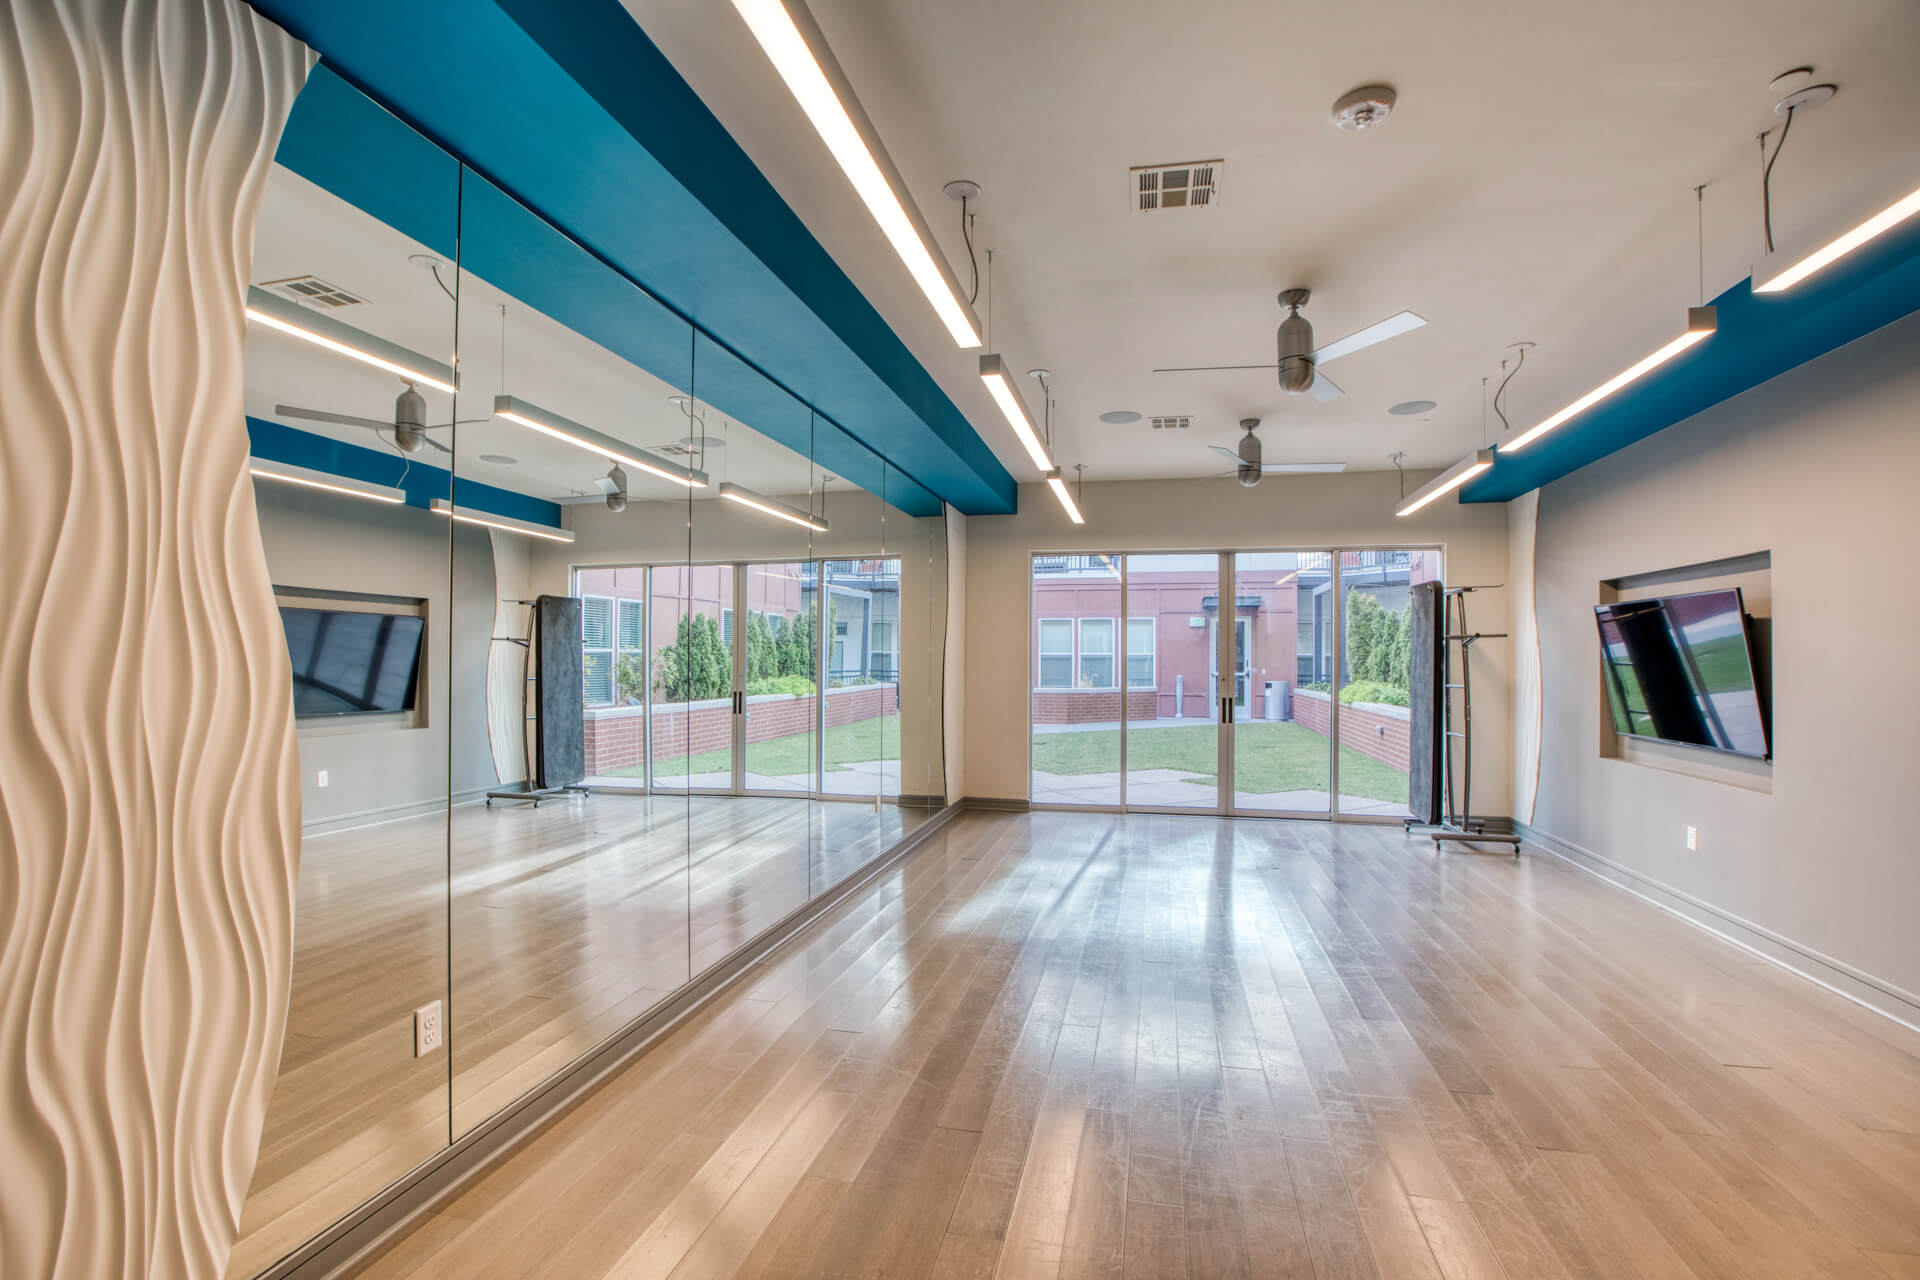 Fitness Center With Yoga/Stretch Area at Centric LoHi by Windsor, Denver, 80211